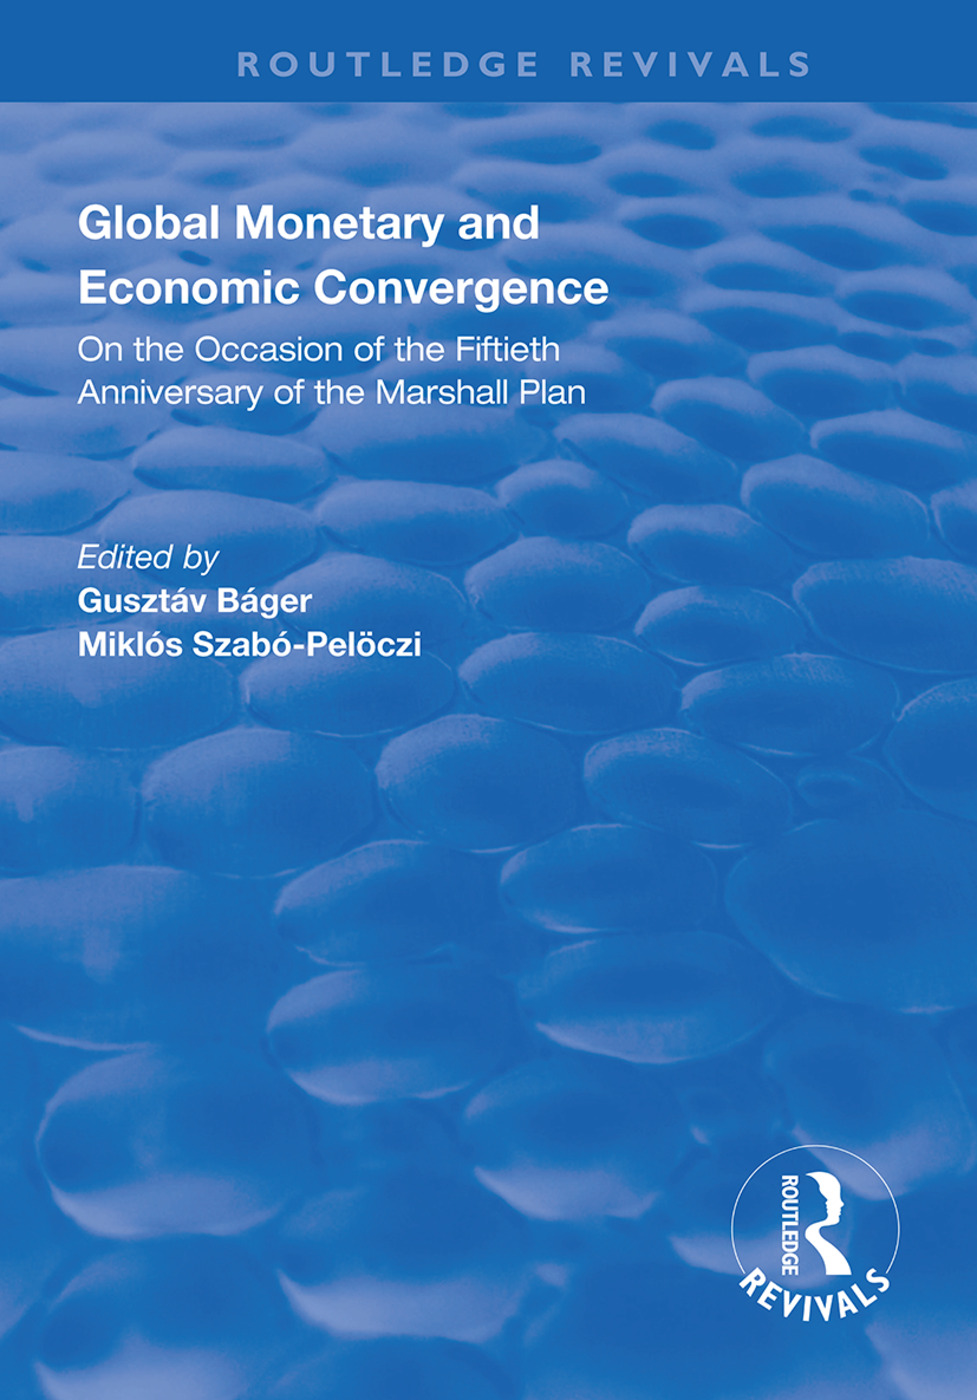 Global Monetary and Economic Convergence: On the Occasion of the Fiftieth Anniversary of the Marshall Plan, 1st Edition (Paperback) book cover